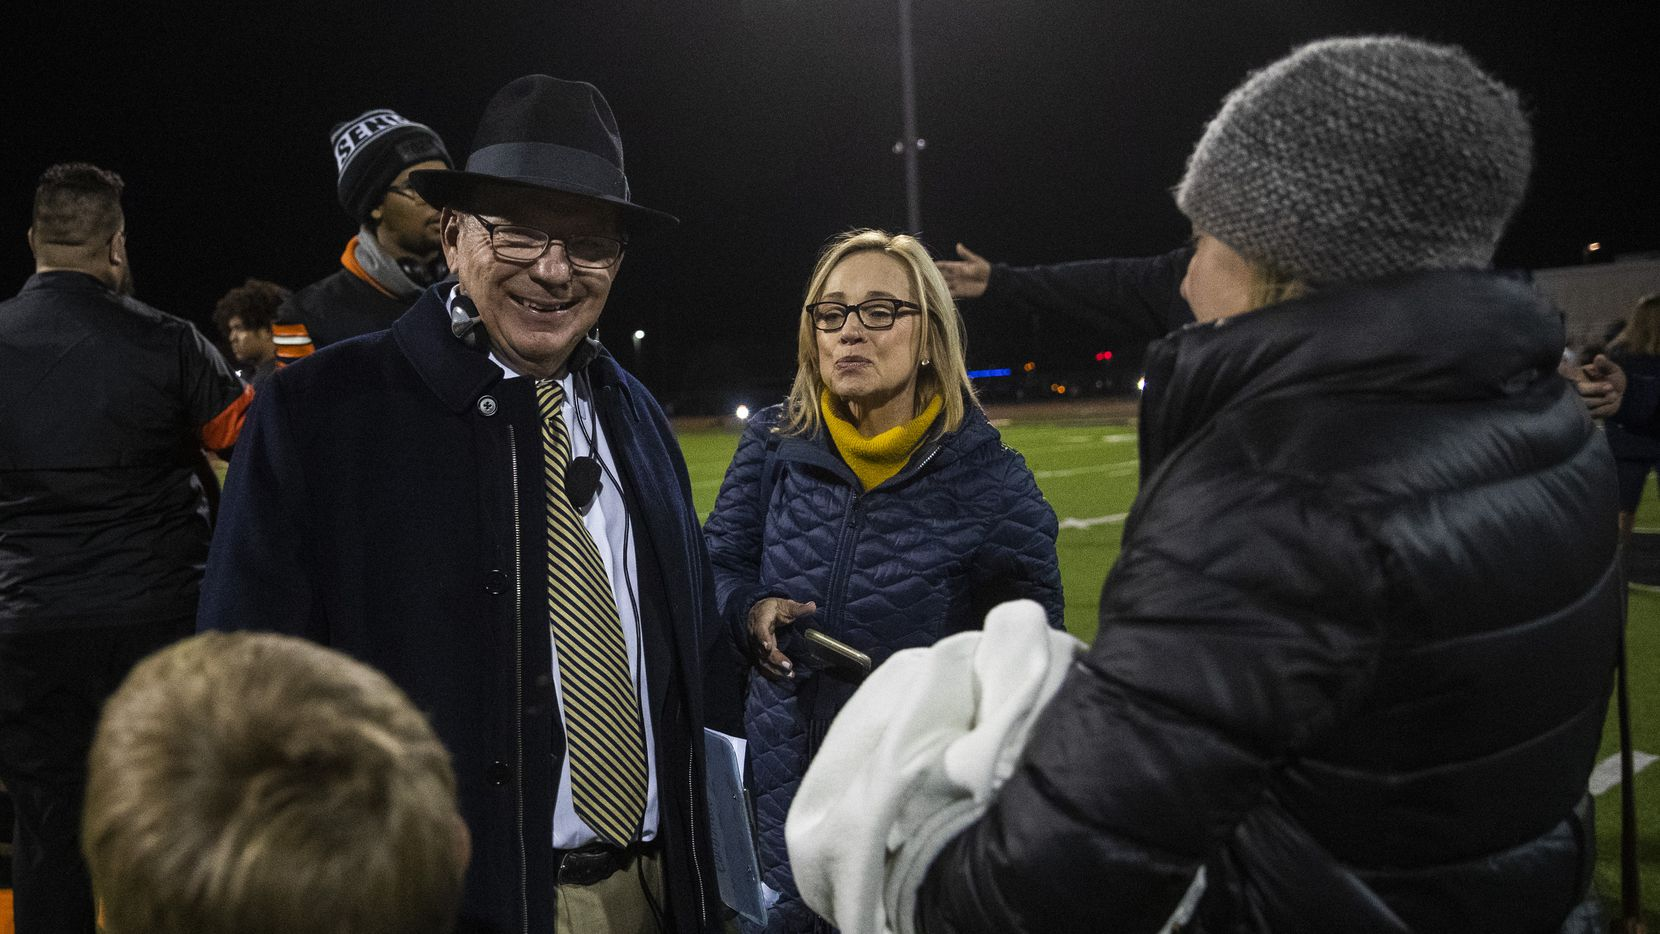 Highland Park head coach Randy Allen smiles while he chats with family after a 42-35 win over Lancaster on Friday, November 1, 2019 at Beverly D. Humphrey Tiger Stadium in Lancaster. It marked his 400th win. (Ashley Landis/The Dallas Morning News)